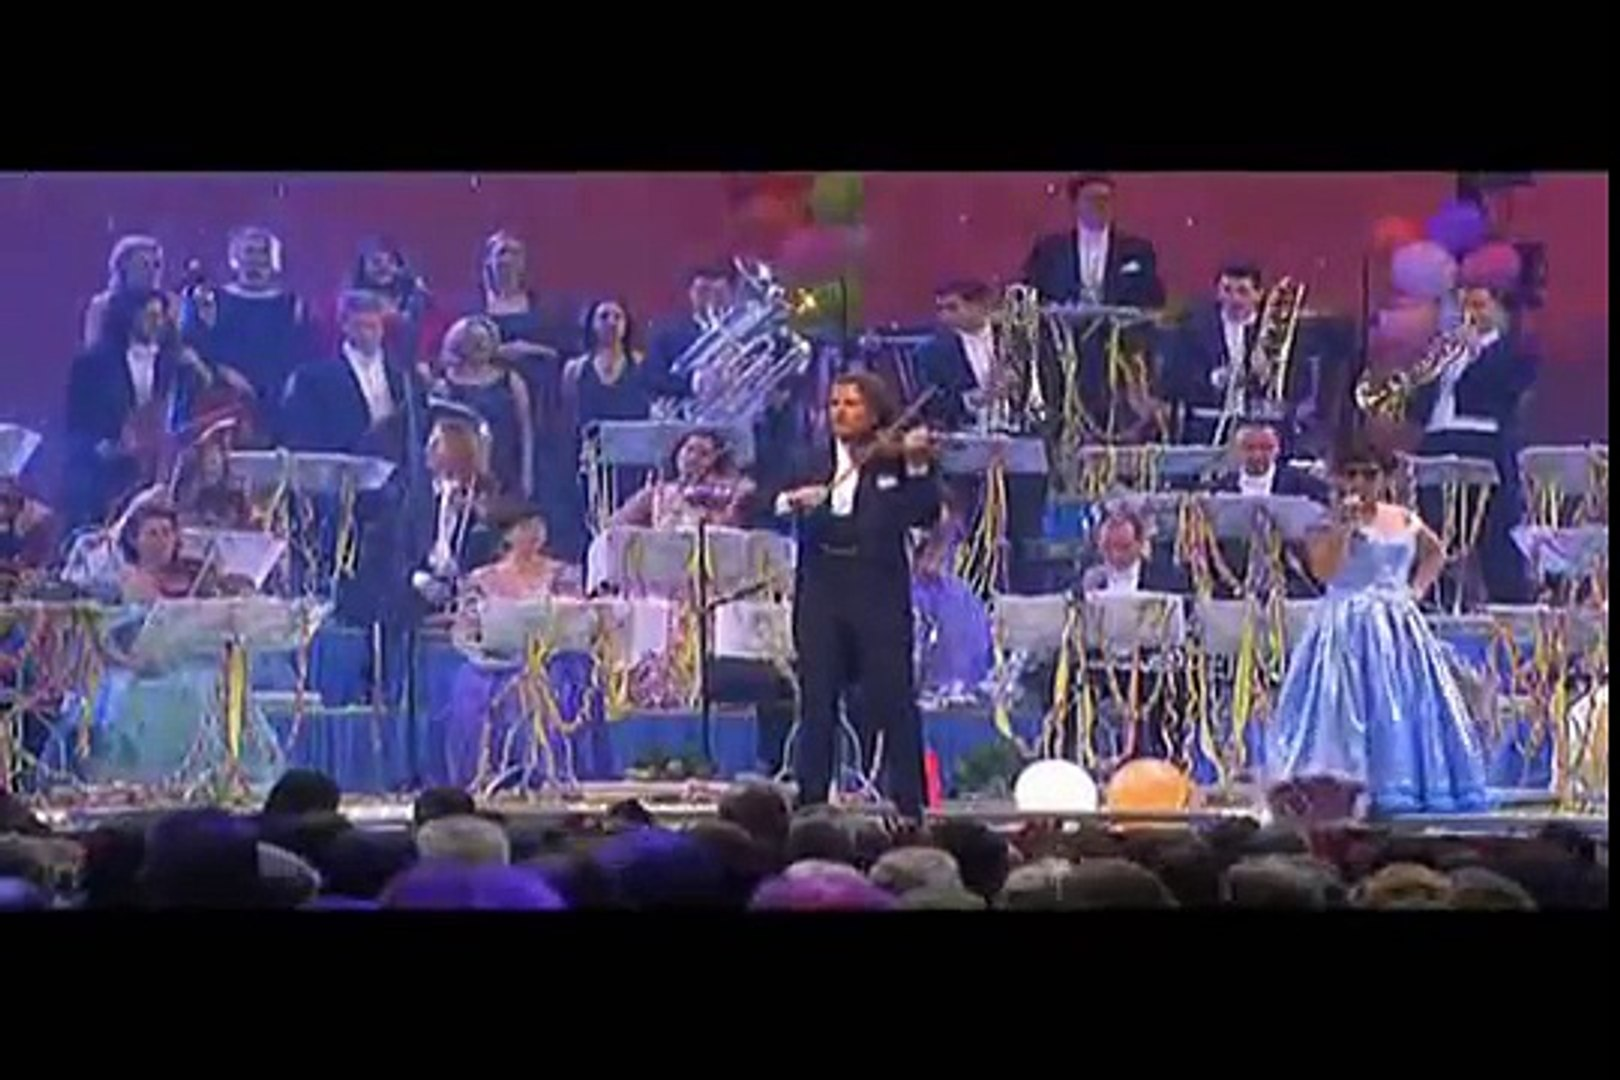 Tirol Rock André Rieu The Johann Strauss Orchestra Video Dailymotion